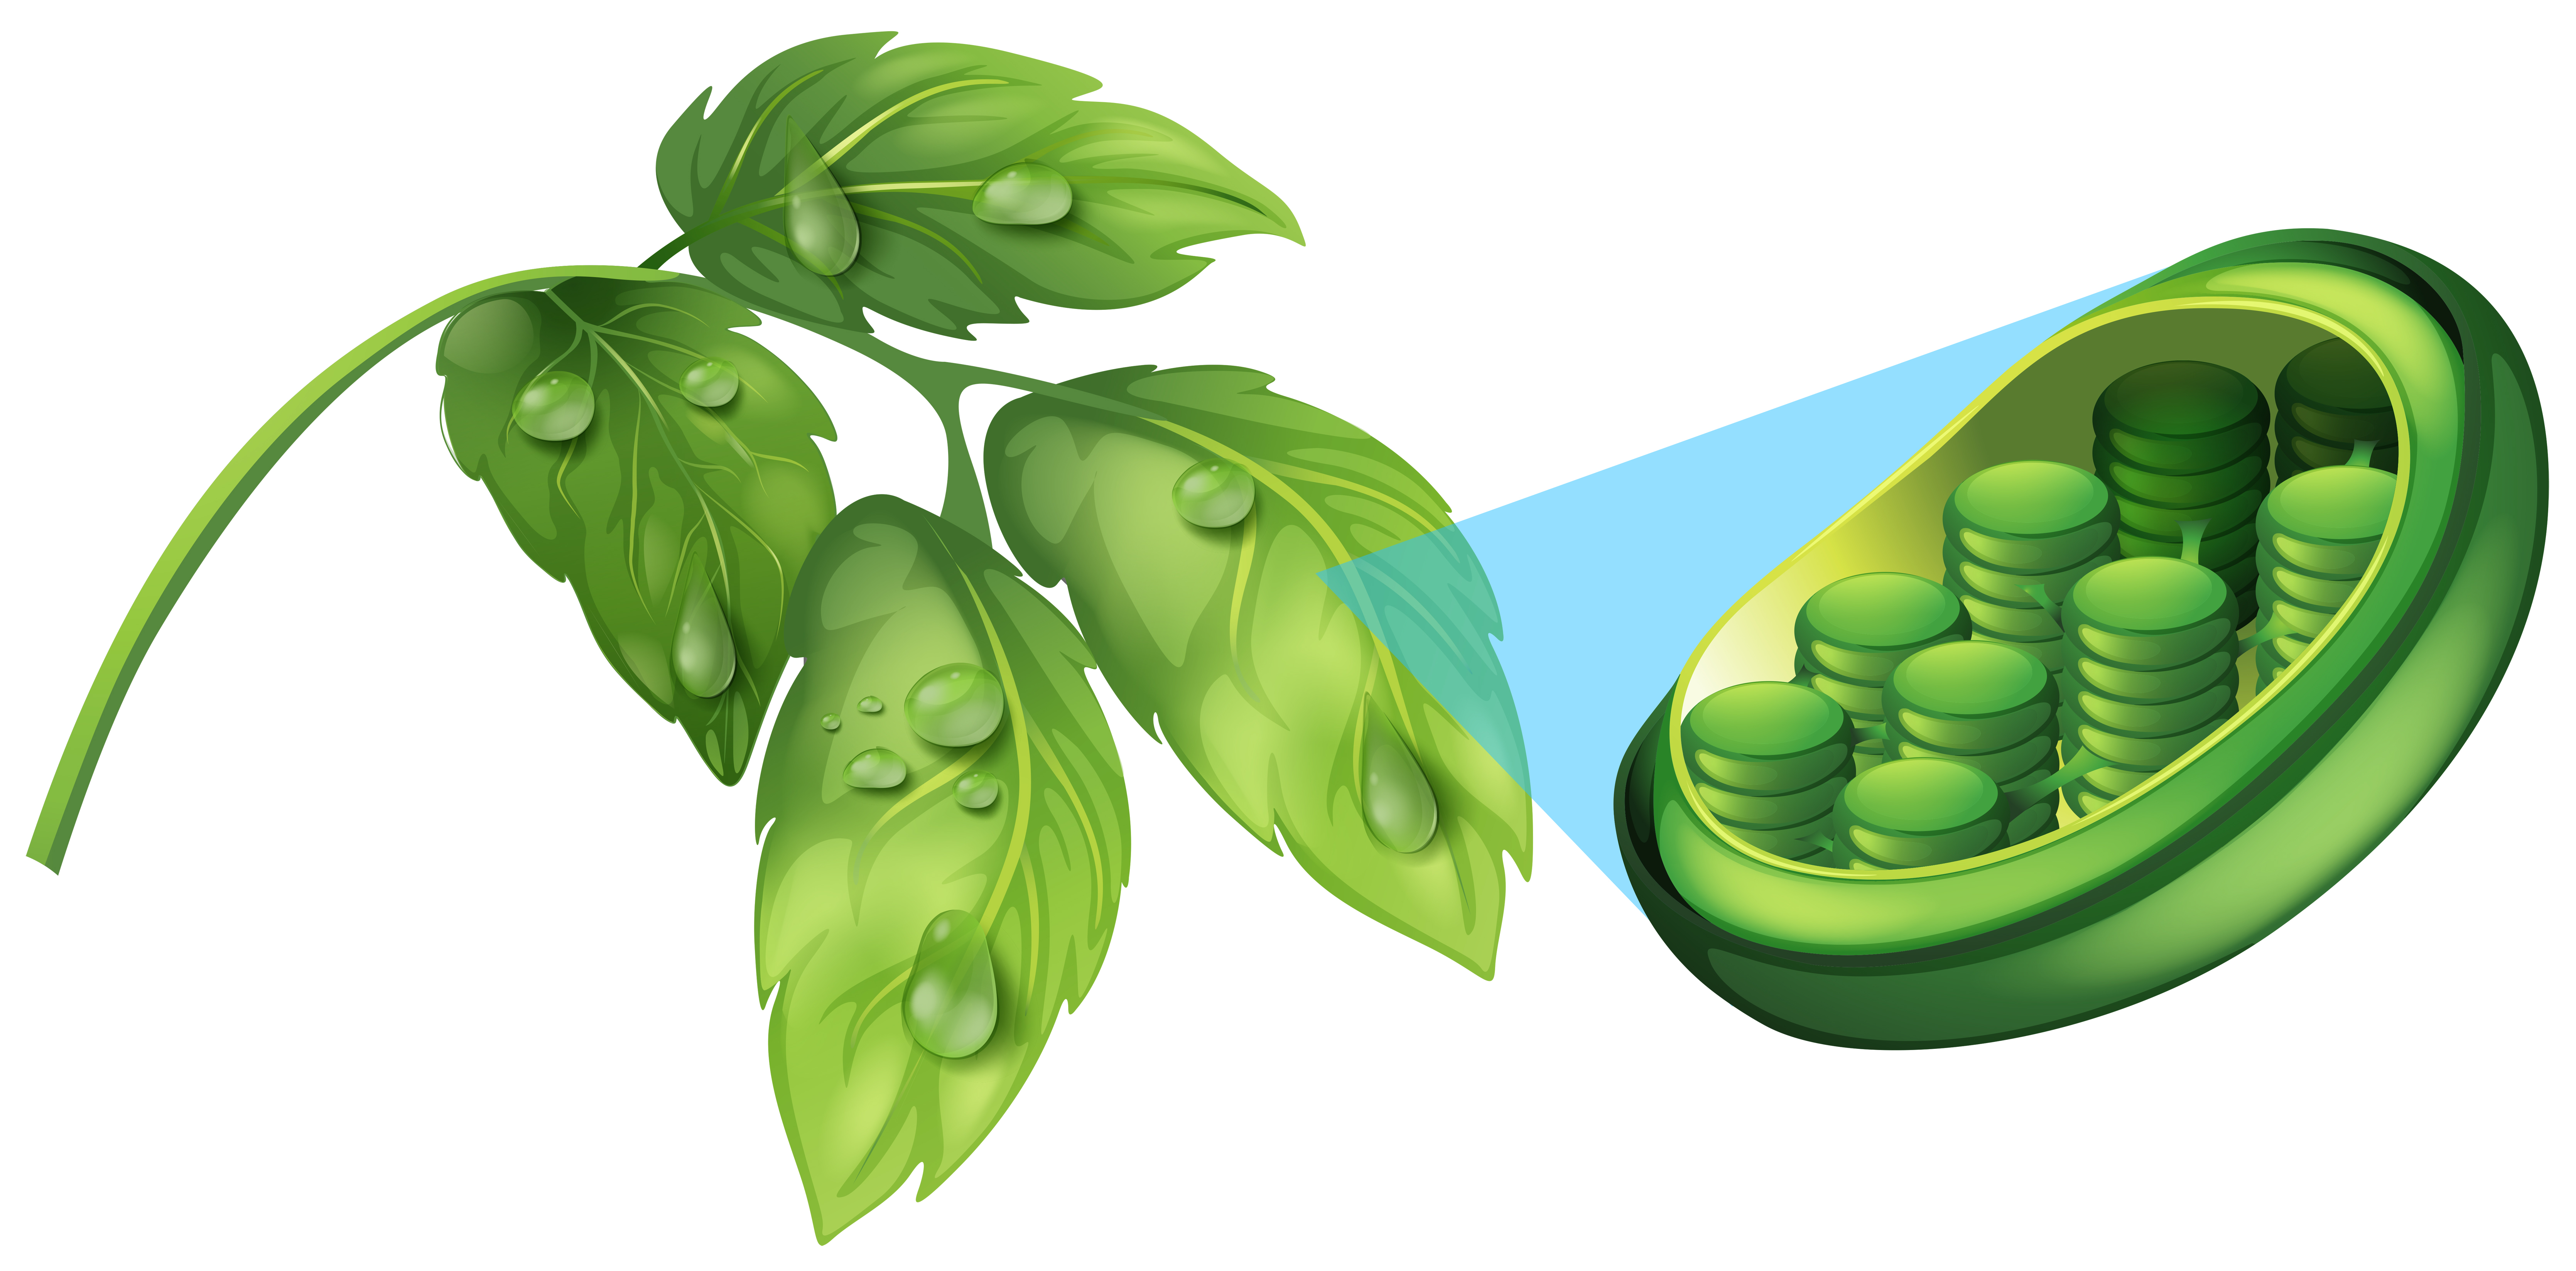 Green leaves and cell plant diagram 607660 Vector Art at ...